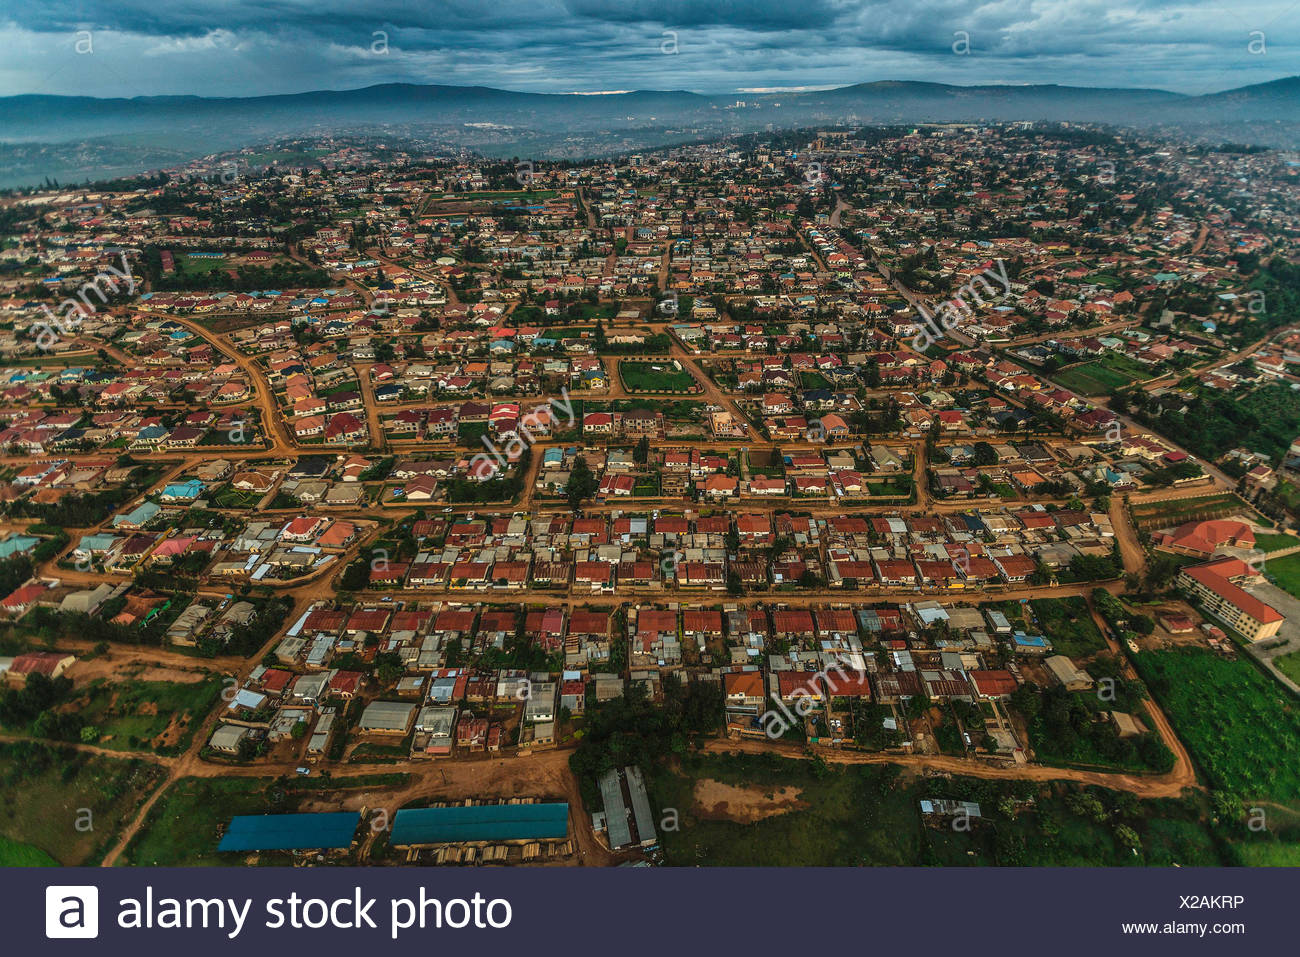 Aerial view of houses on the extreme edge between Volcanoes National Park and the farmlands in northern Rwanda. - Stock Image